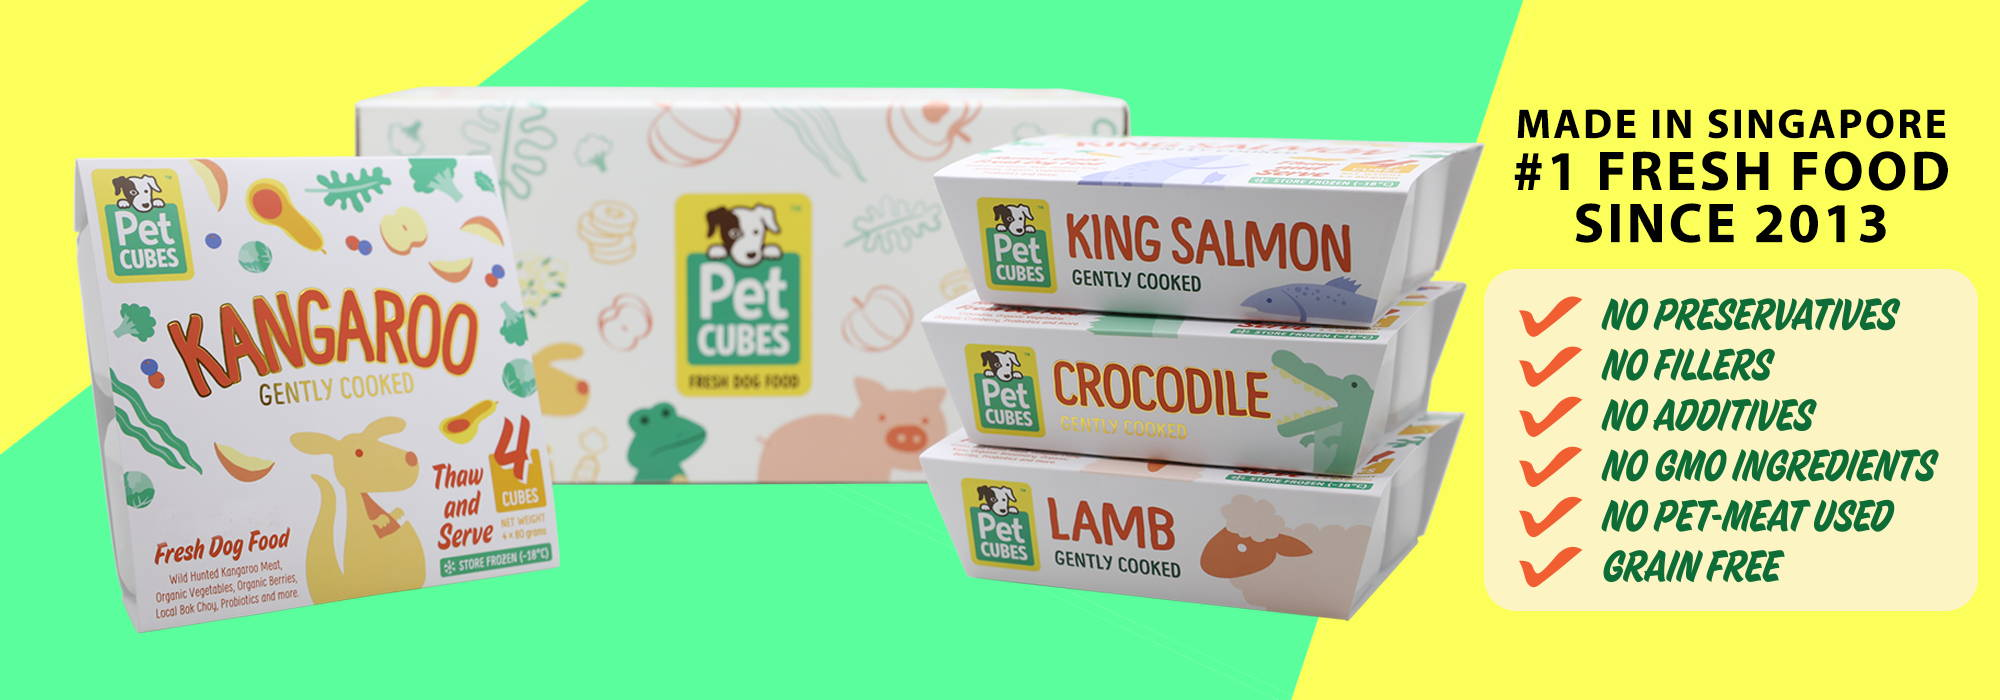 Pet Cubes Food and Treats banner